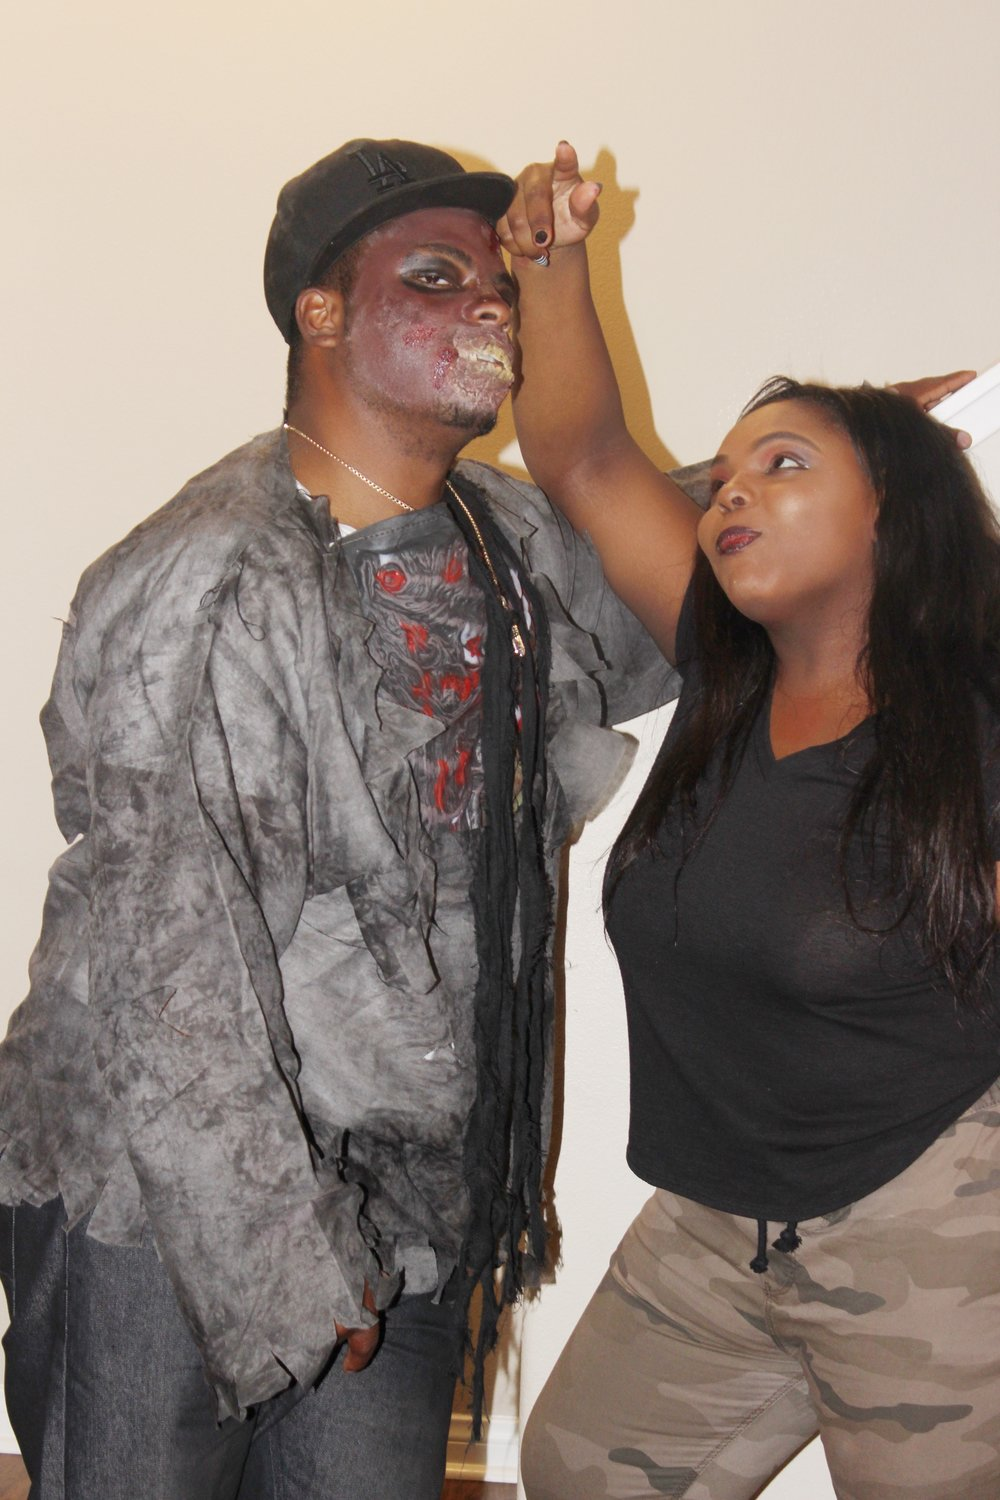 - My Handsome Zombie and My G.I Jane